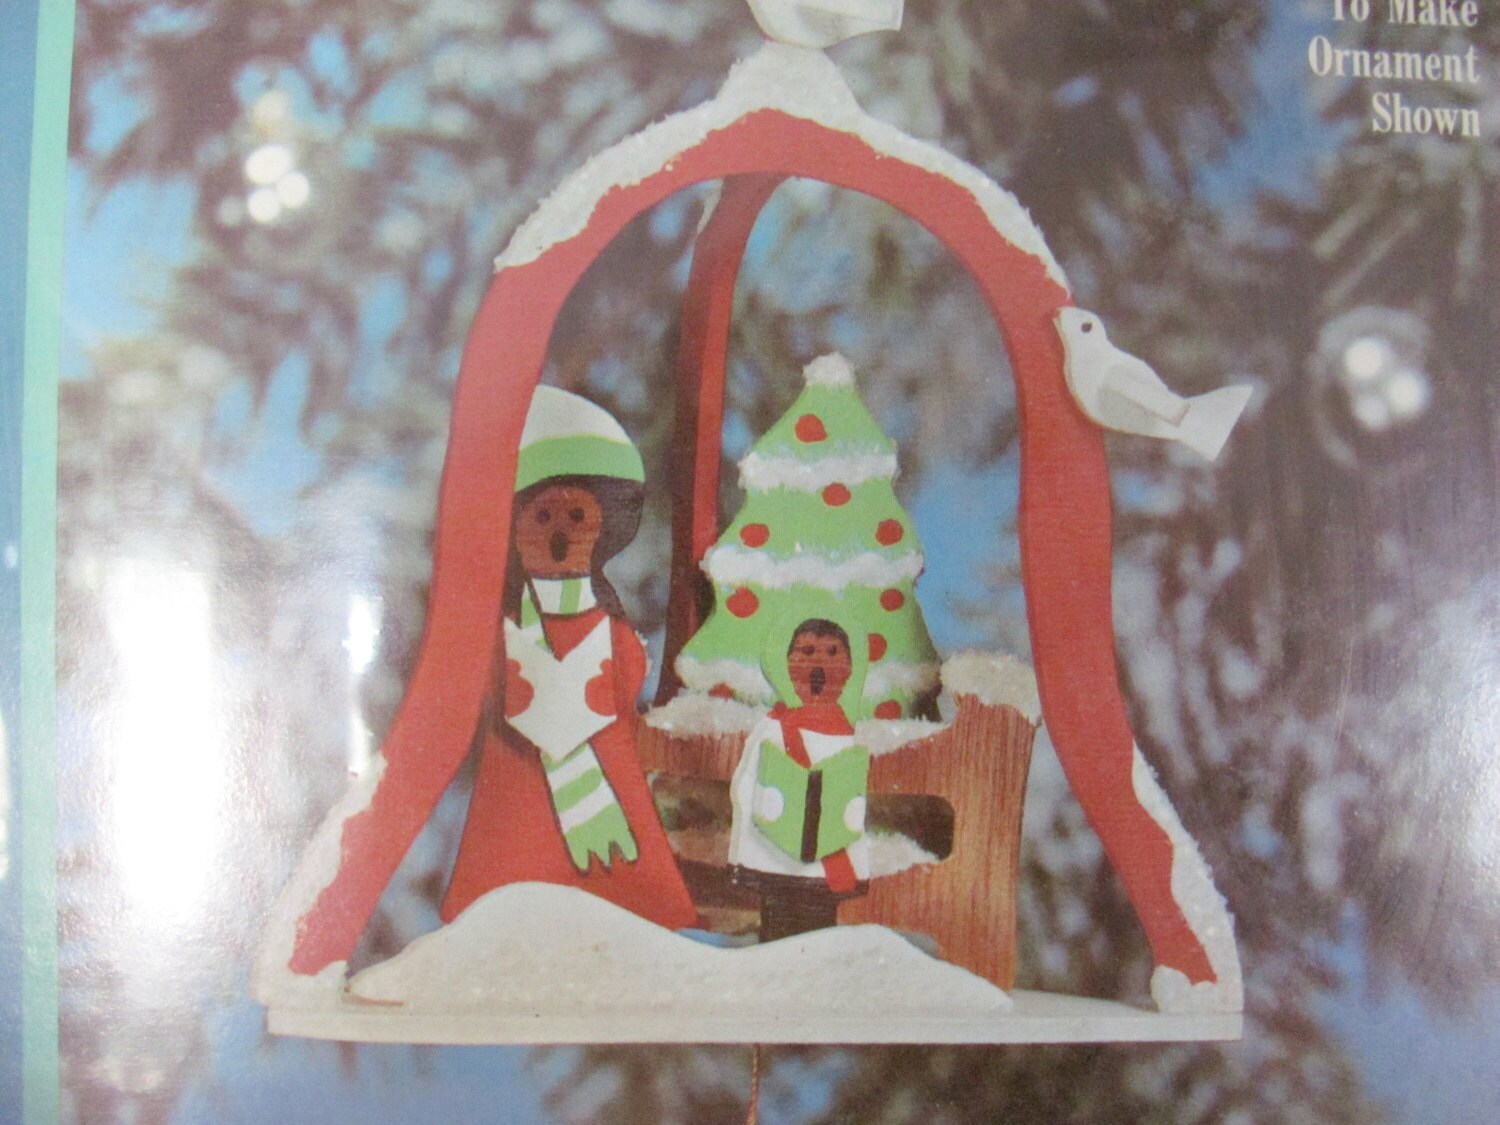 Craft master paint by number kits -  Craft Master Paint By Number Wood Ornament Kit Christmas Caroler Ornament Christmas Decor Sold By Thirstyowlvintage